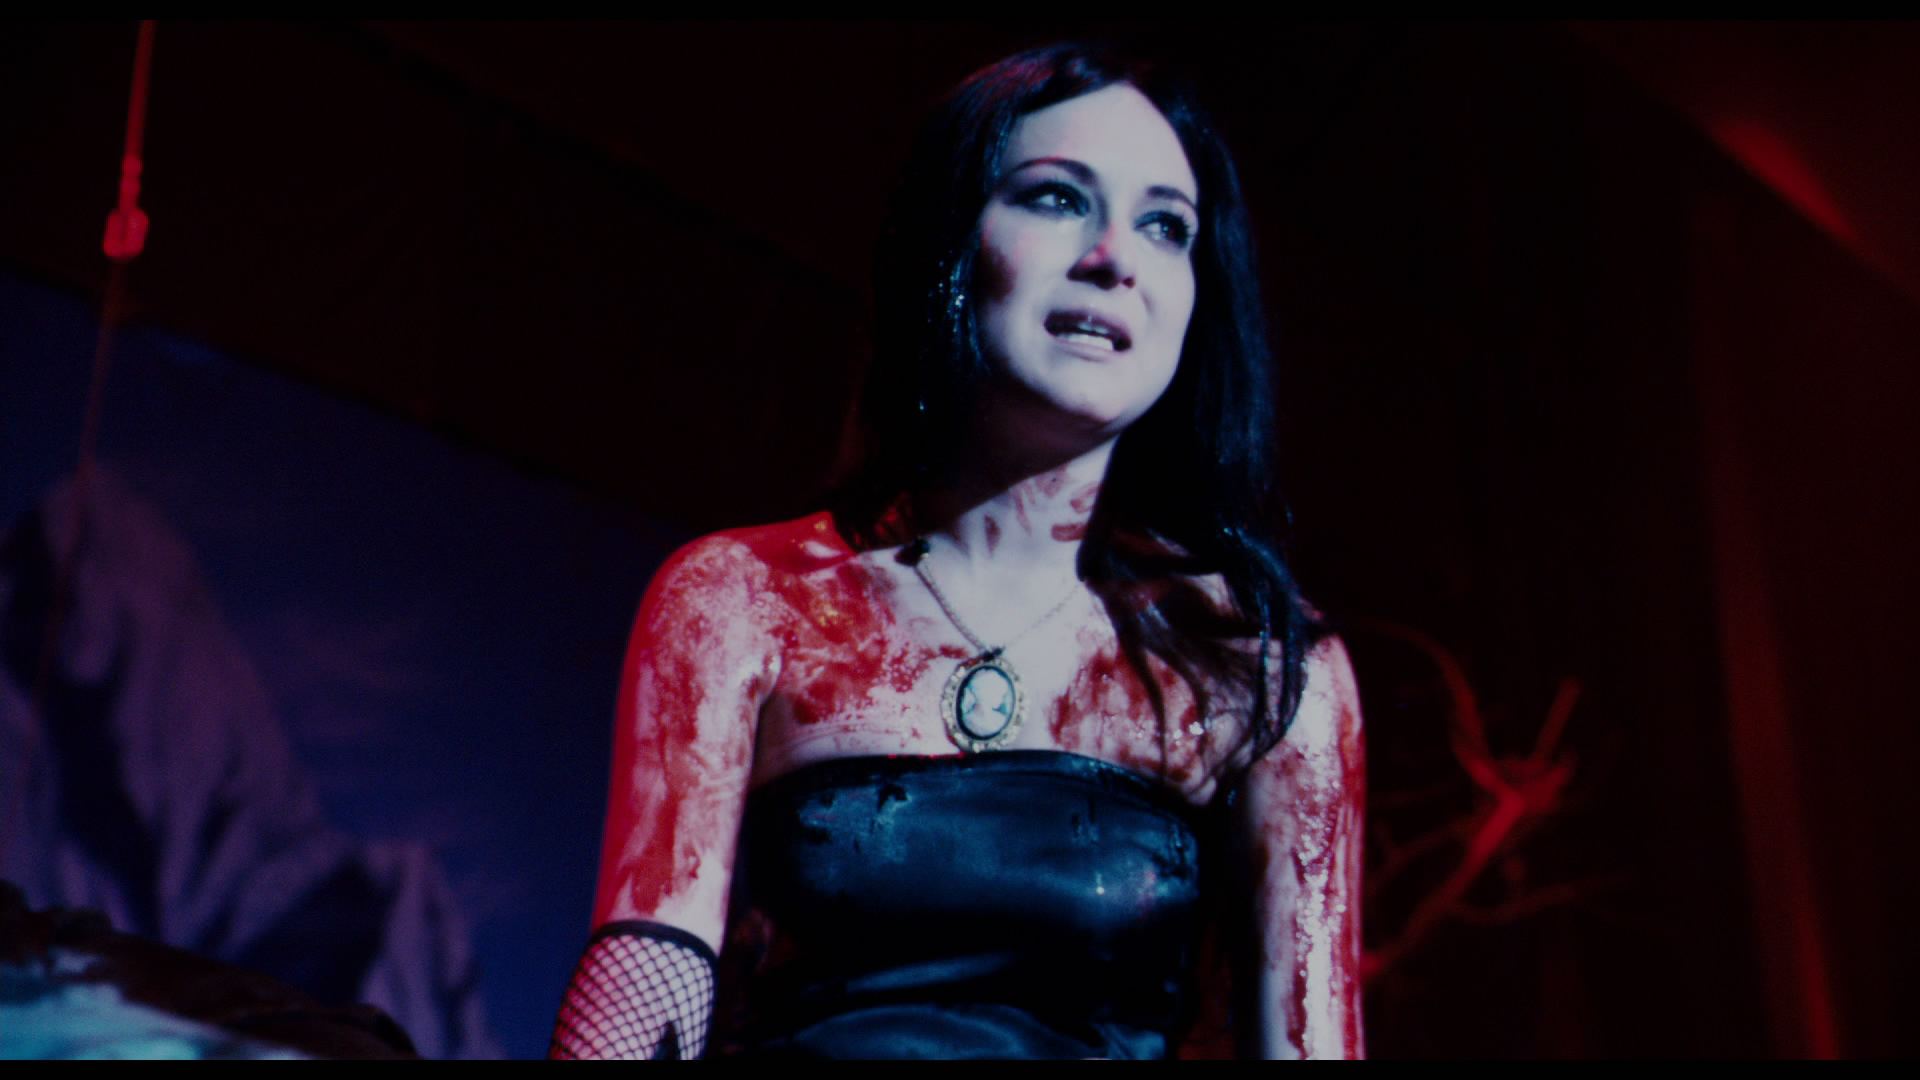 Repo! The Genetic Opera (Blu-ray) : DVD Talk Review of the Blu-ray